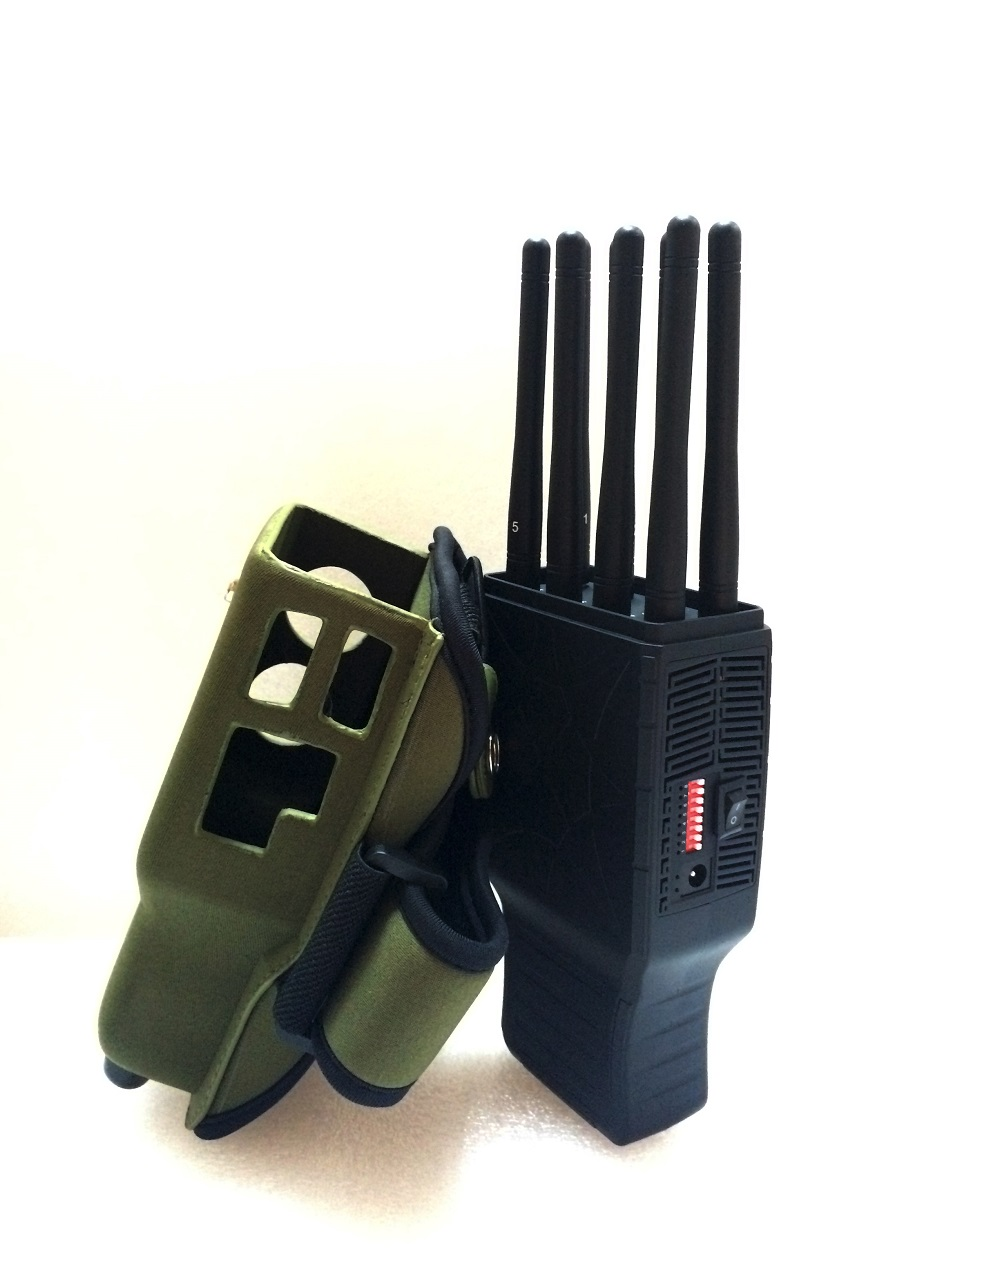 Hotsale Portable Cell Phone Jammer 8 Bands